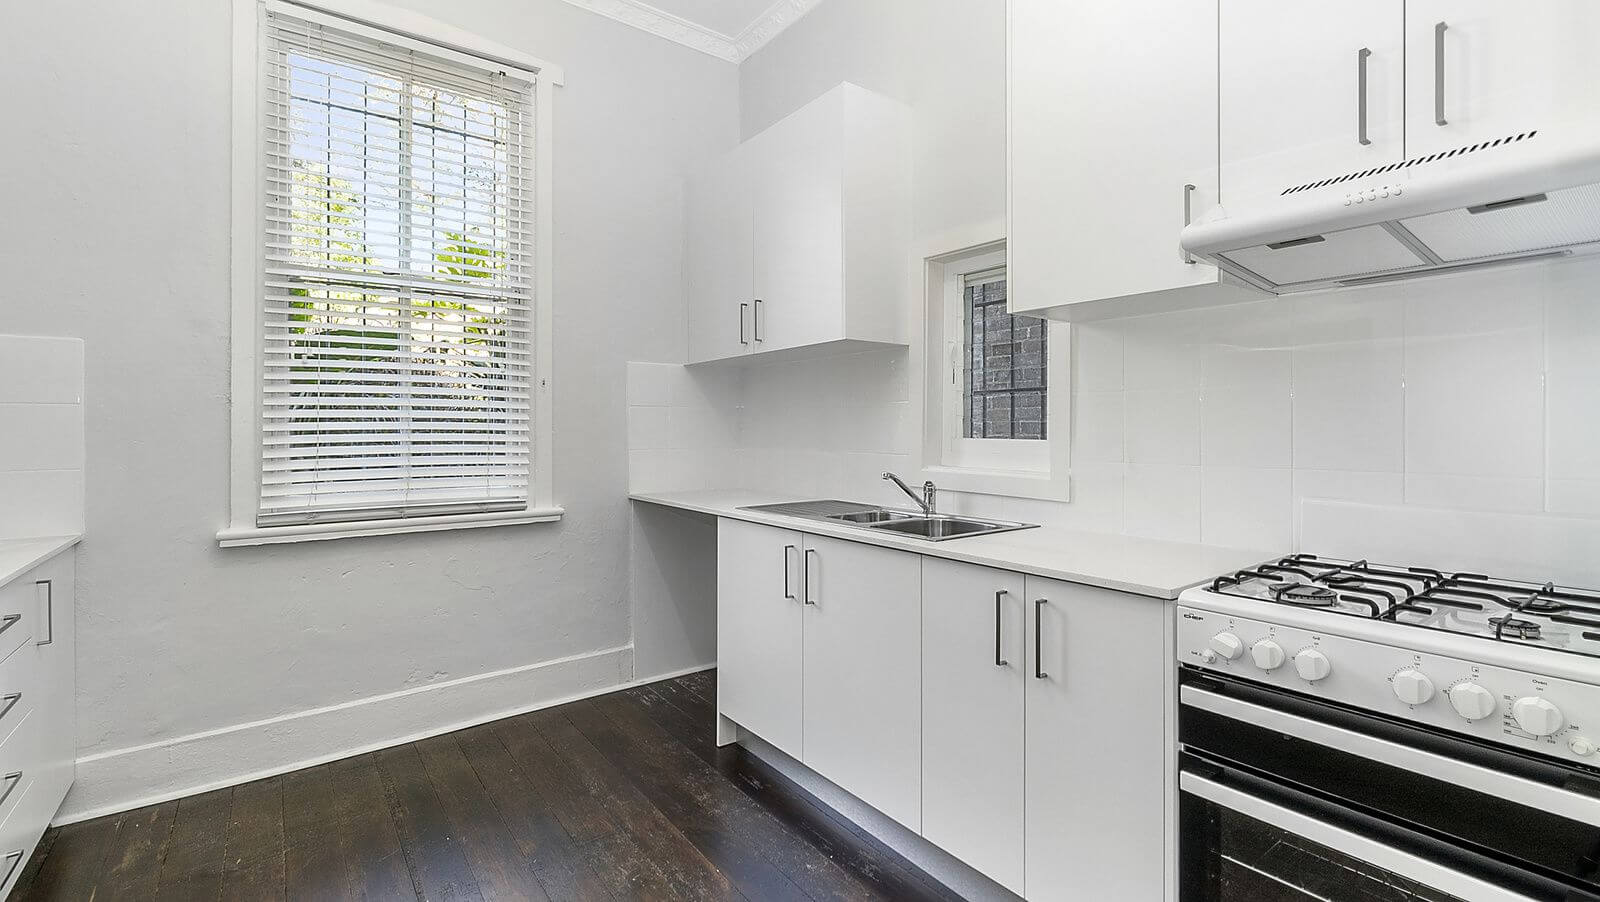 6/9-13 Leichardt Street, Glebe apartment for rent